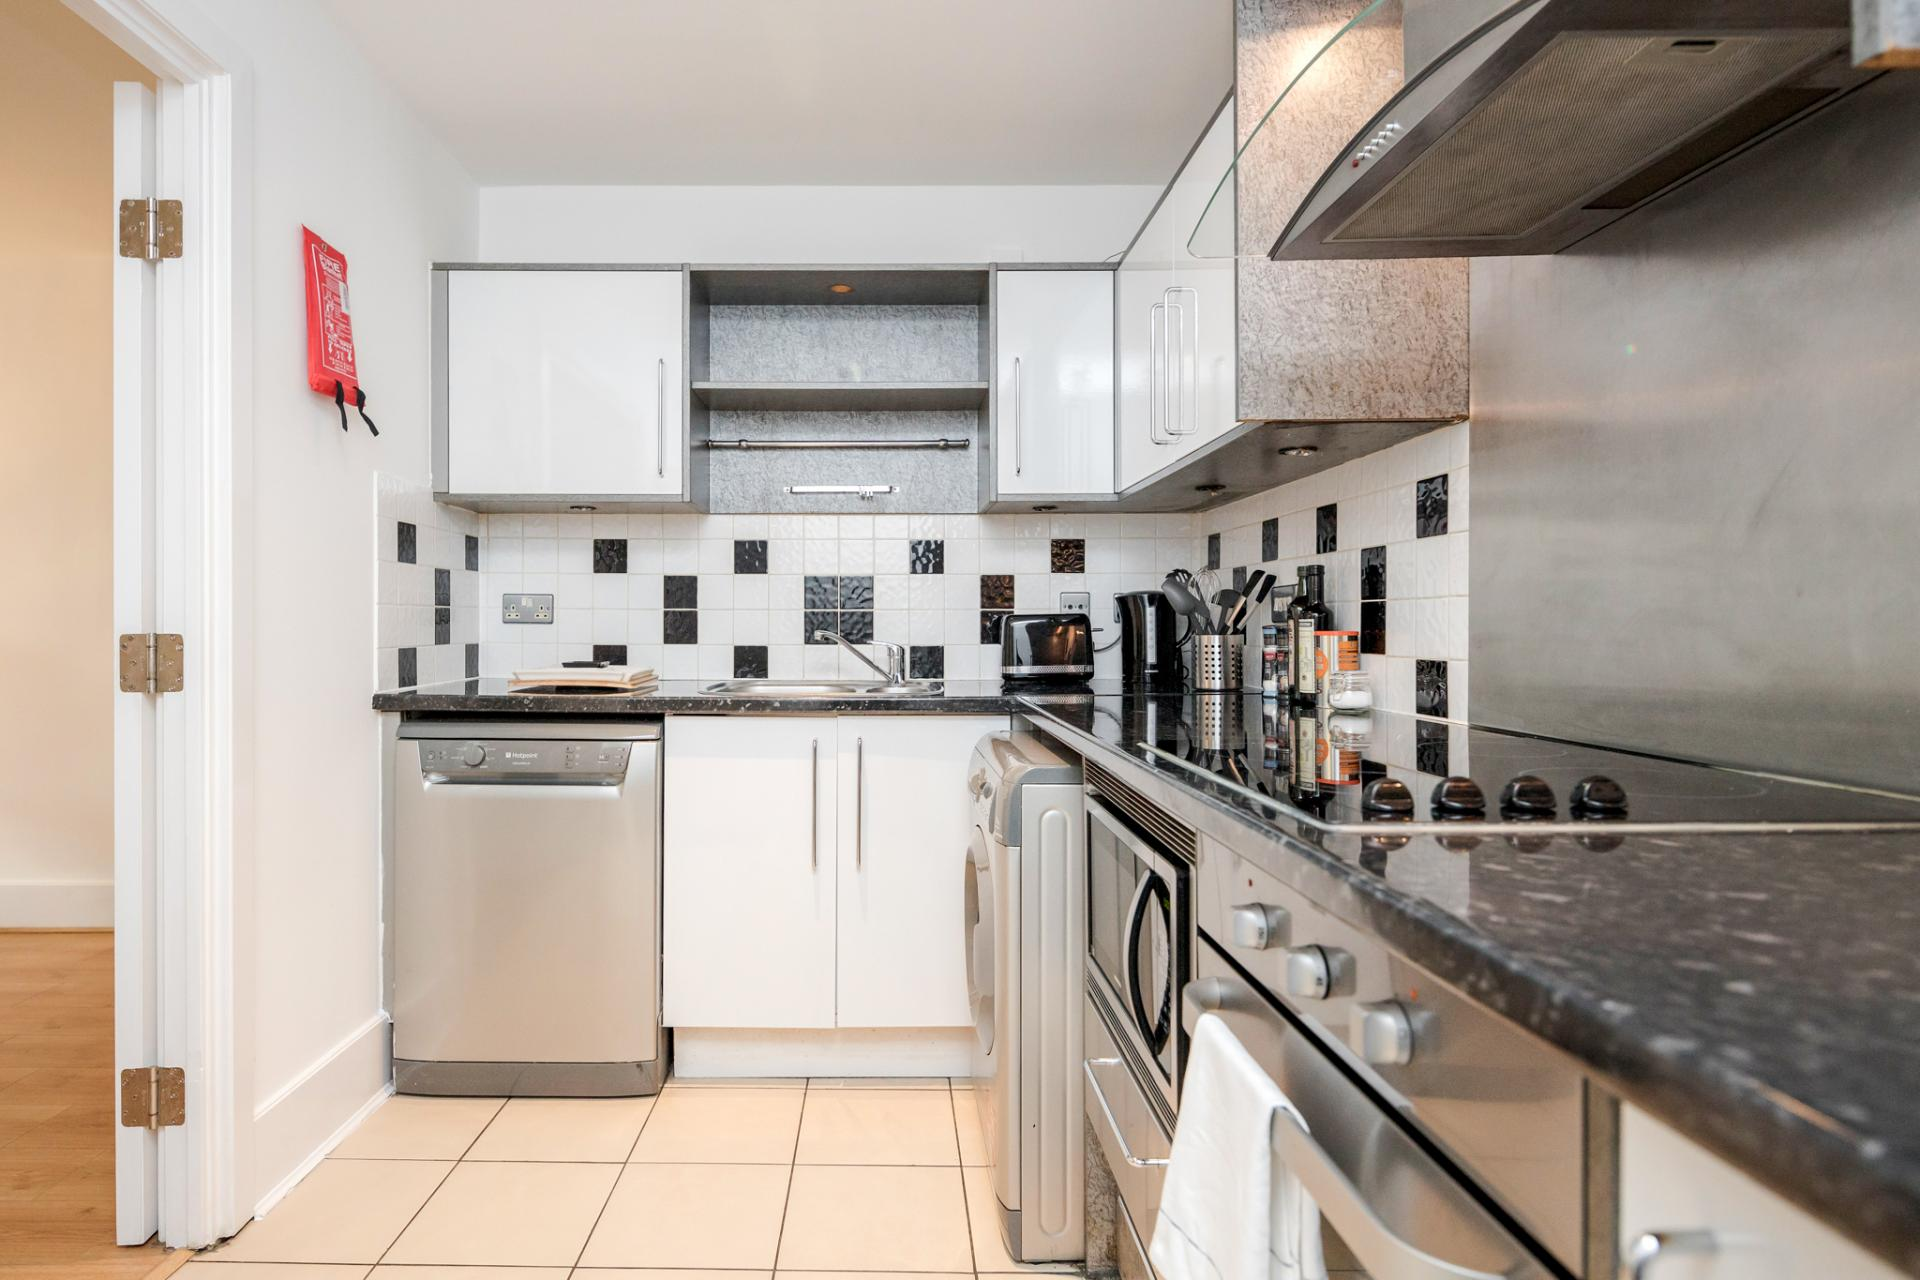 Kitchen at St Georges Wharf Apartment, Vauxhall, London